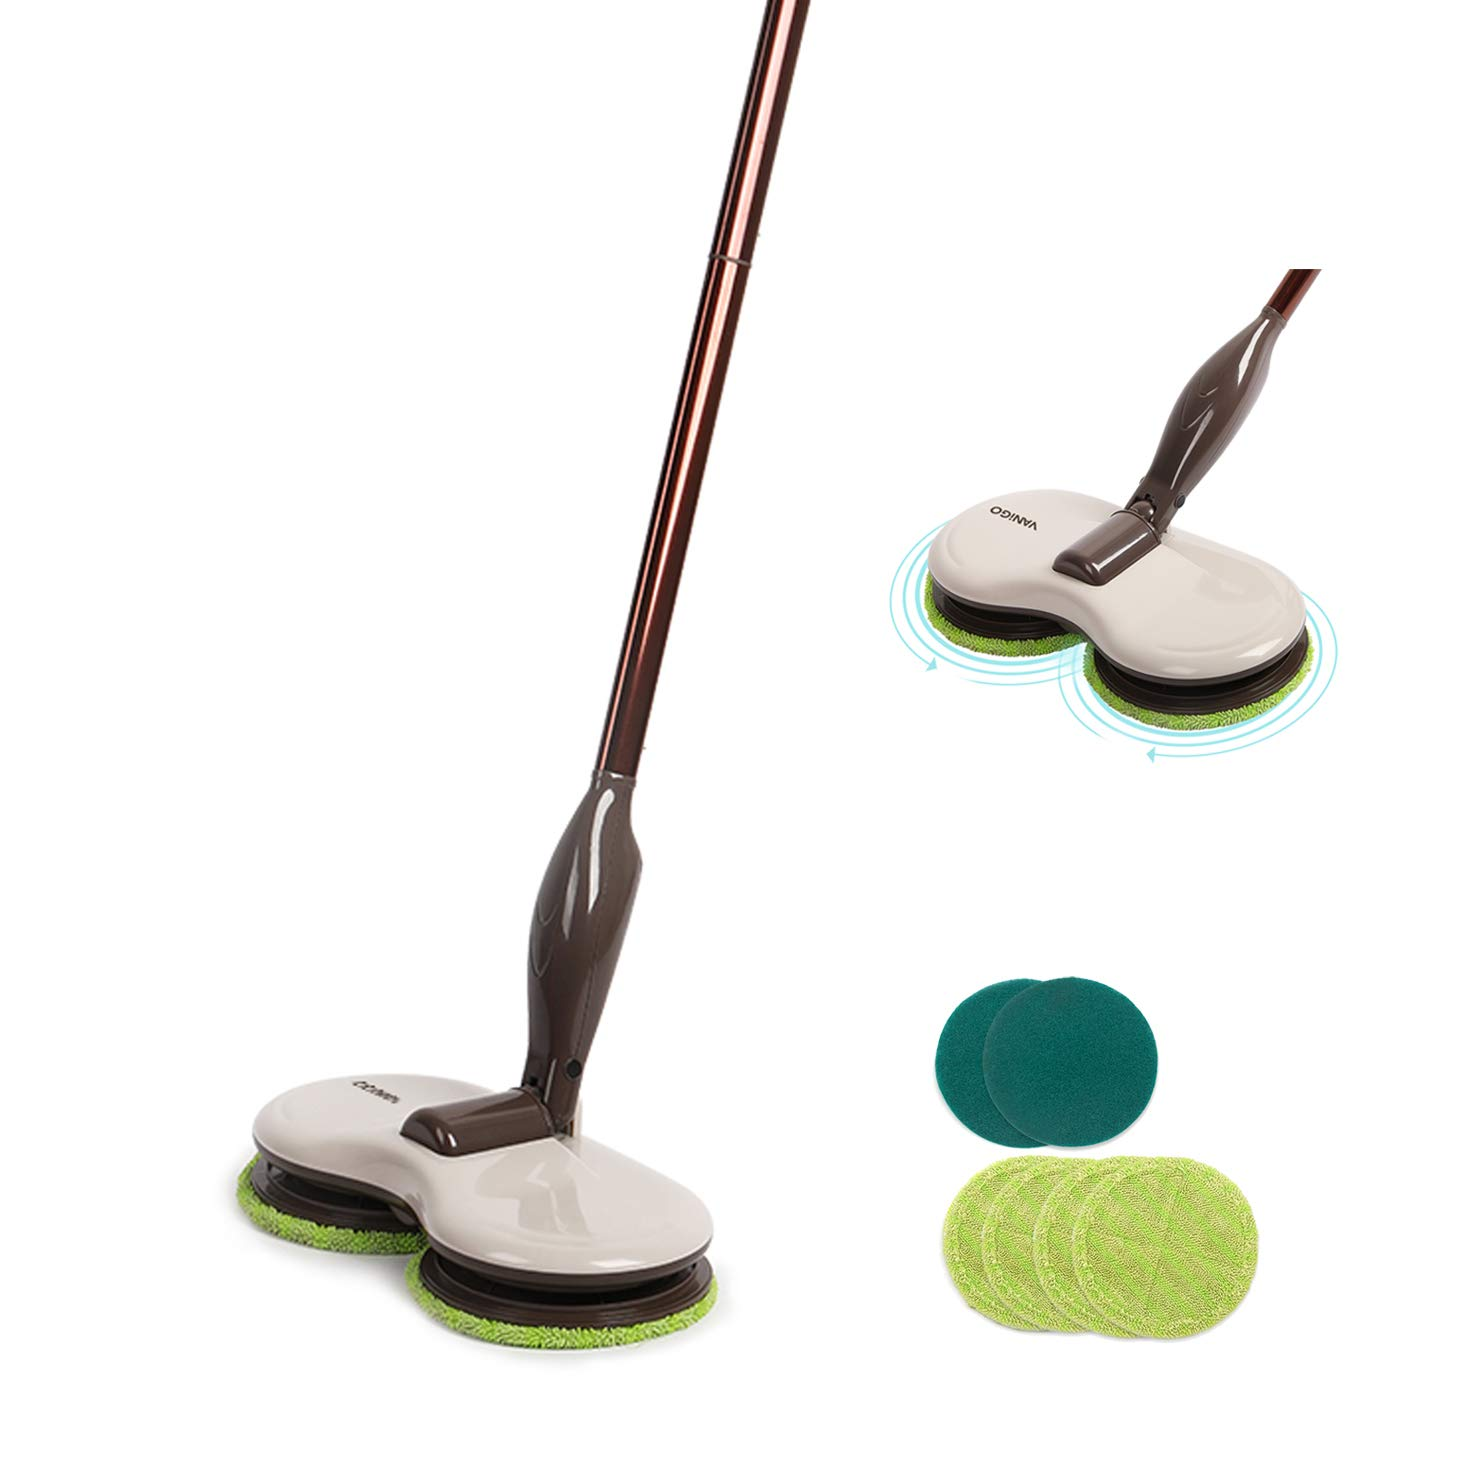 Electric Spin Mop, Cordless Floor Sweeper Cleaner with Dual Spinning Heads and Replaceable Pads for Tile Wood Hard Floor Window